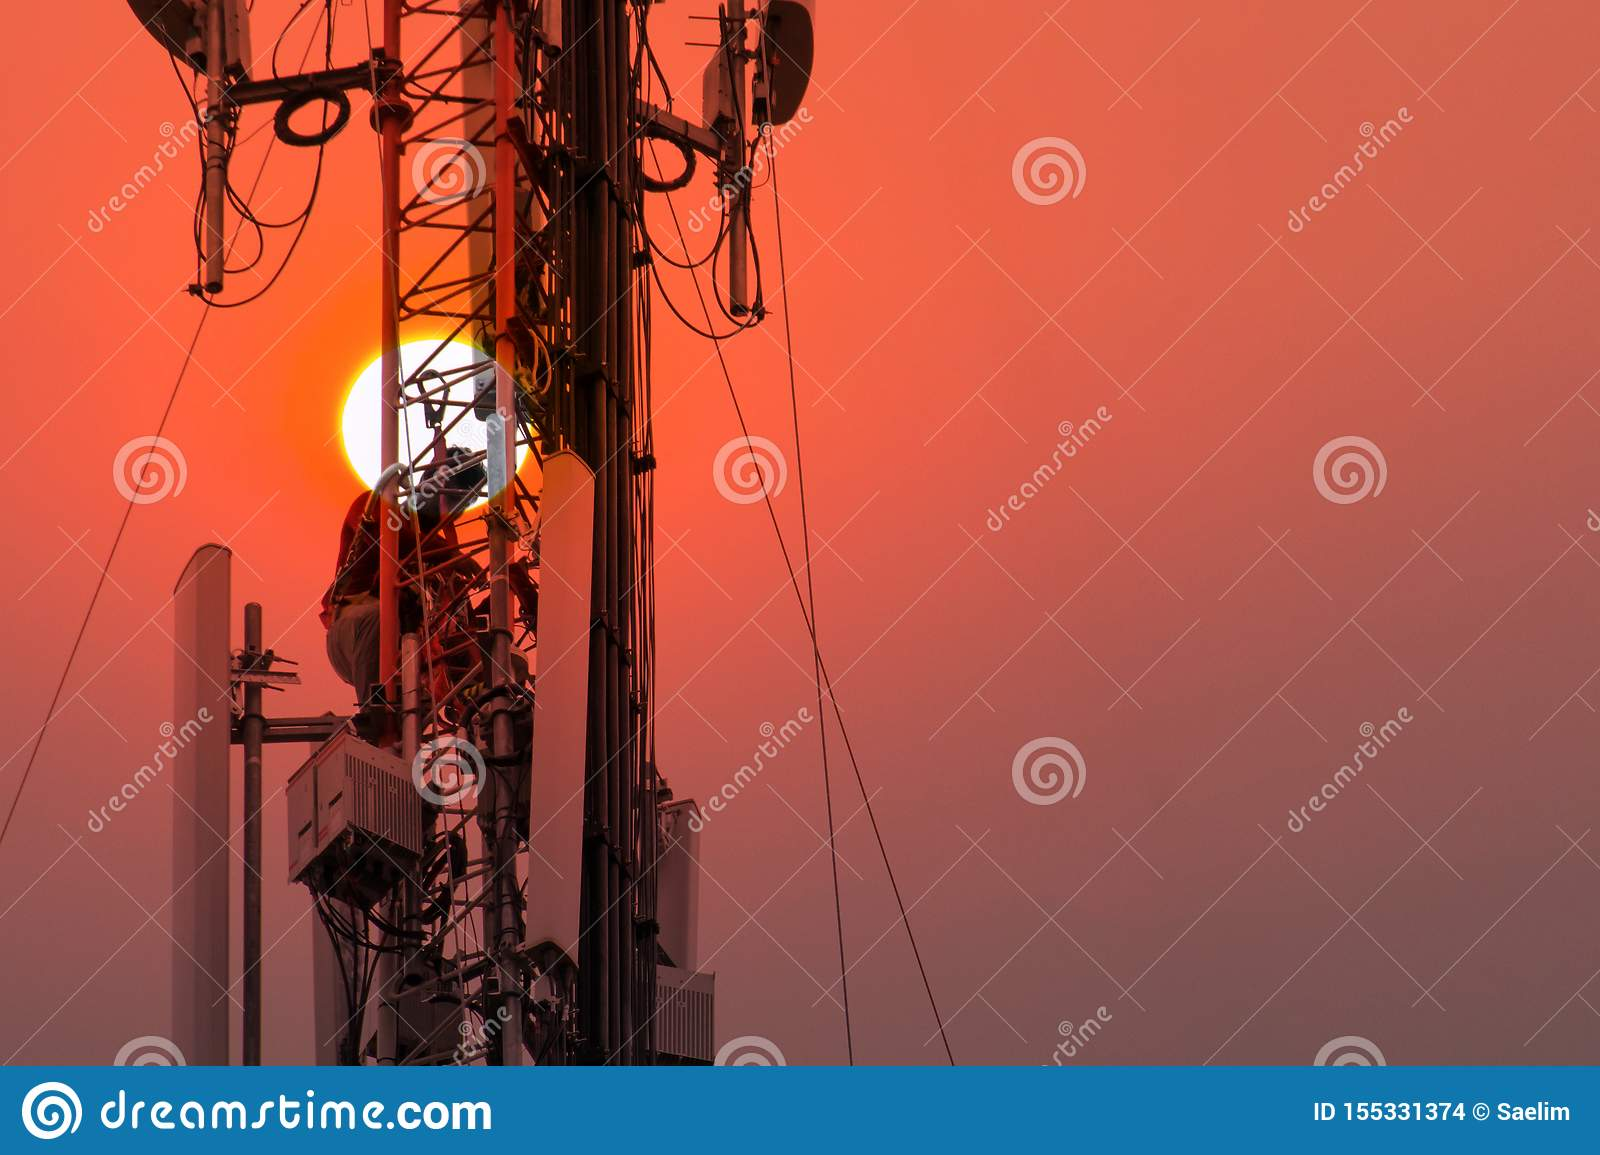 Engineer or Technician working on high tower,Risk work of high work, people are working with safety equipment on tower,